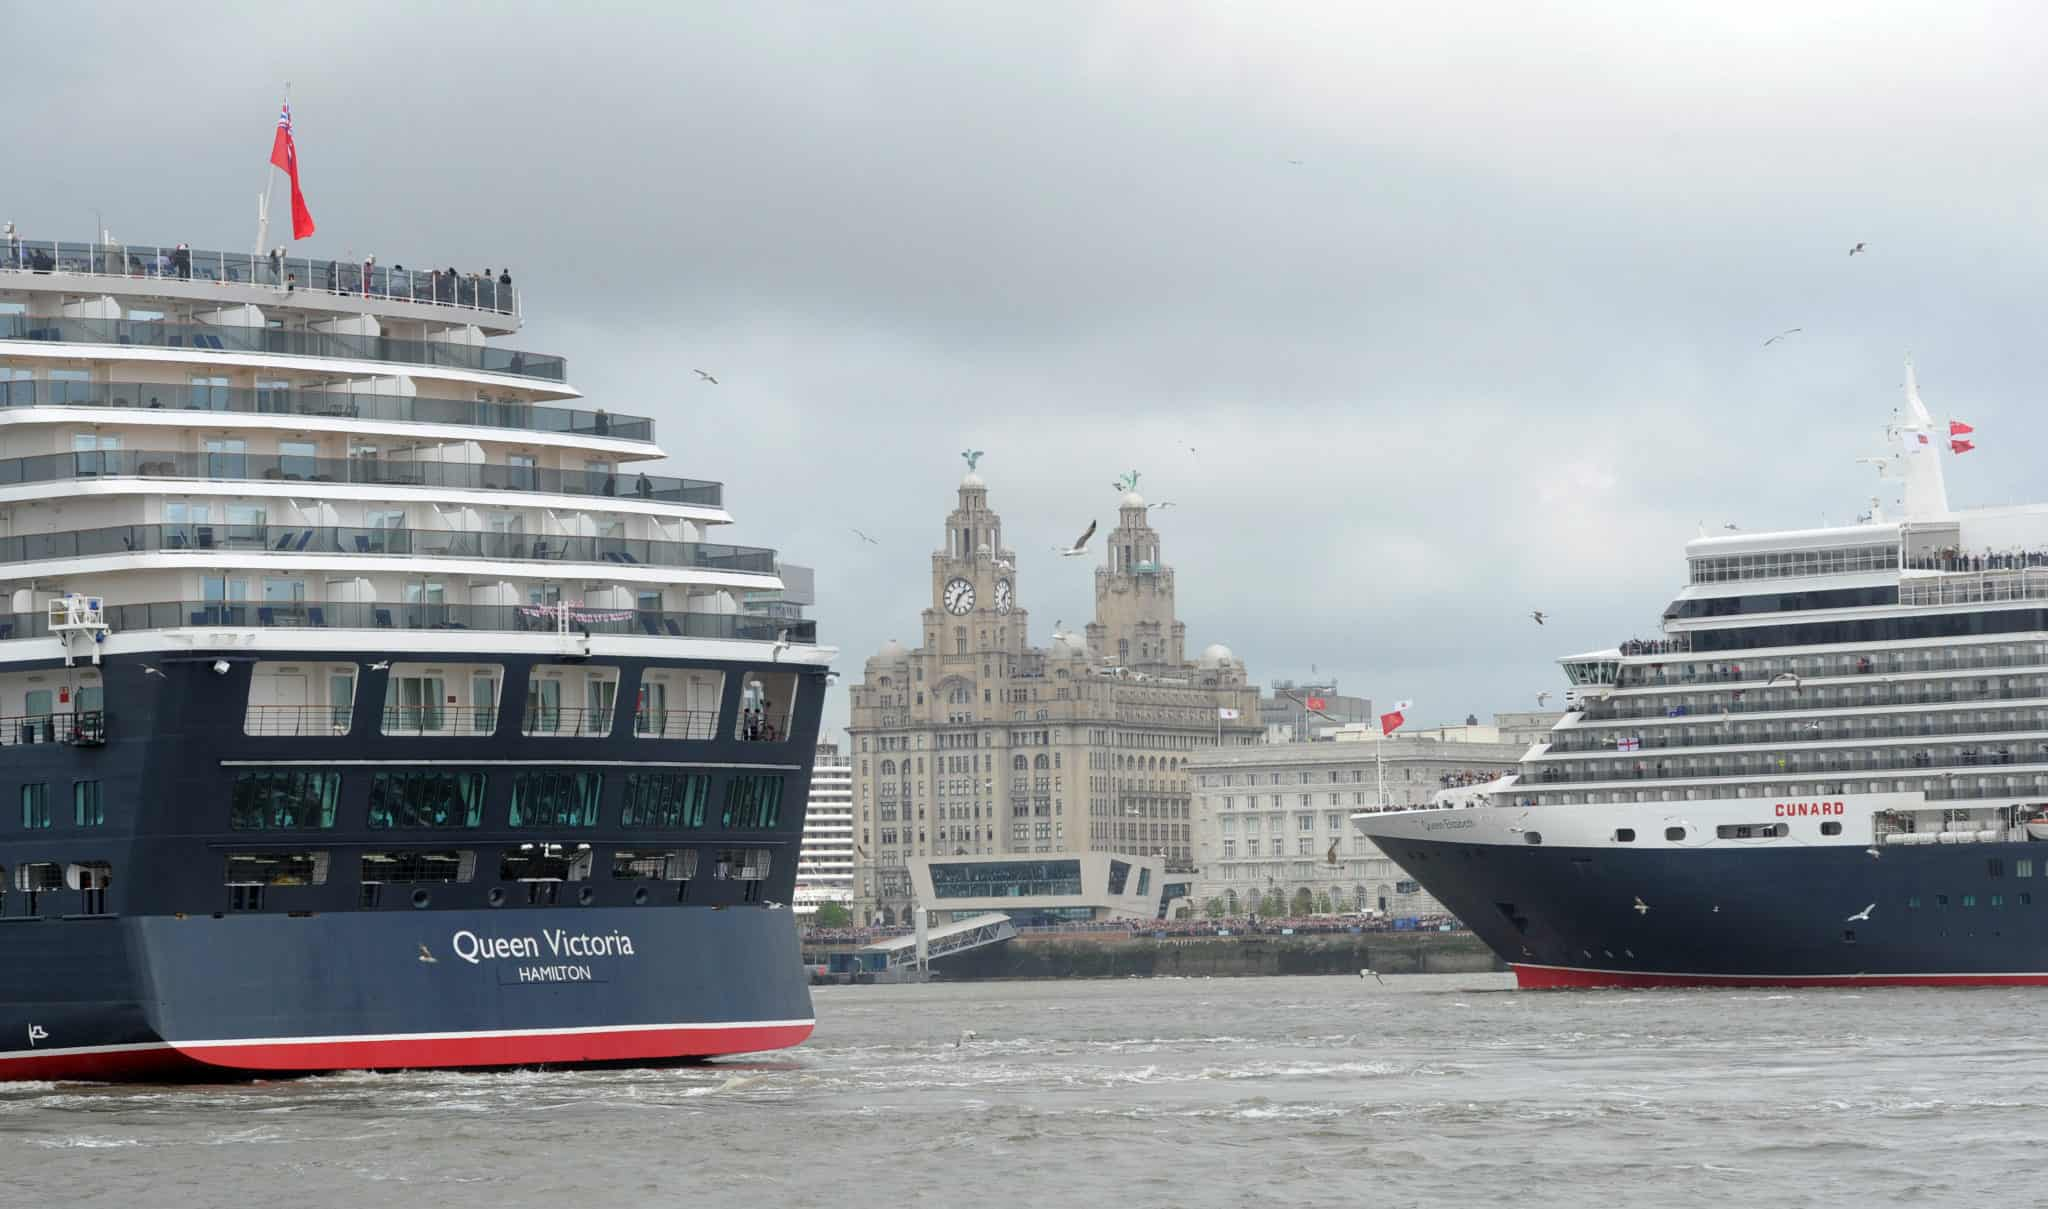 Cunard 175th celebrations on the River Mersey, Liverpool pictured The Three Queens cruise liners Queen Victoria and Queen Elizabeth on the river. Photo by Colin Lane